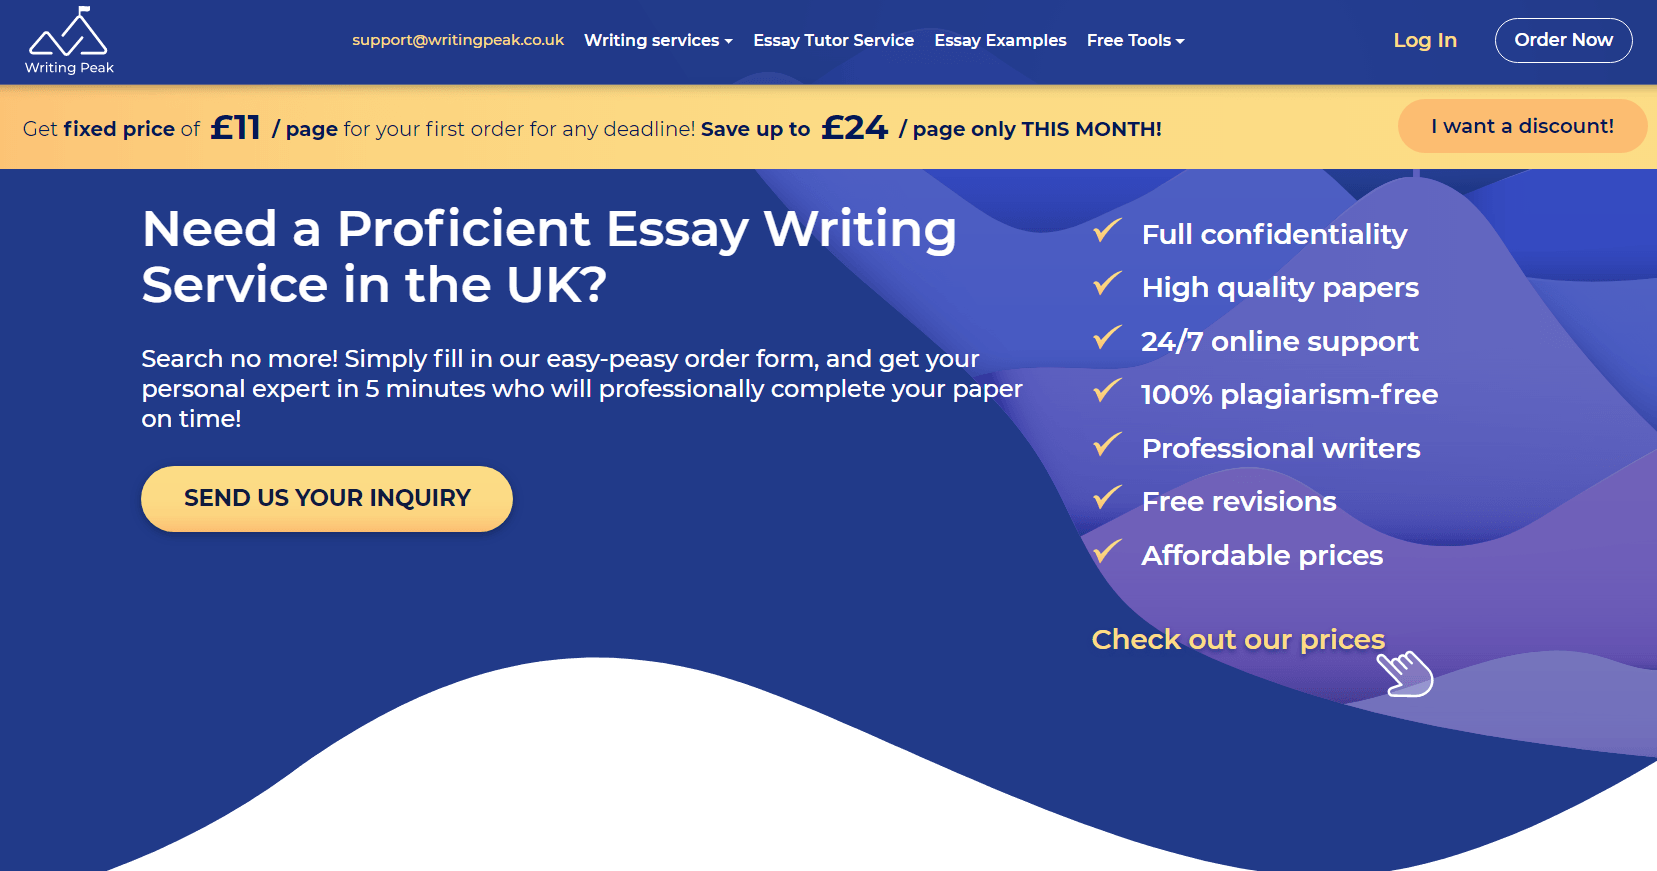 writingpeak.co.uk review